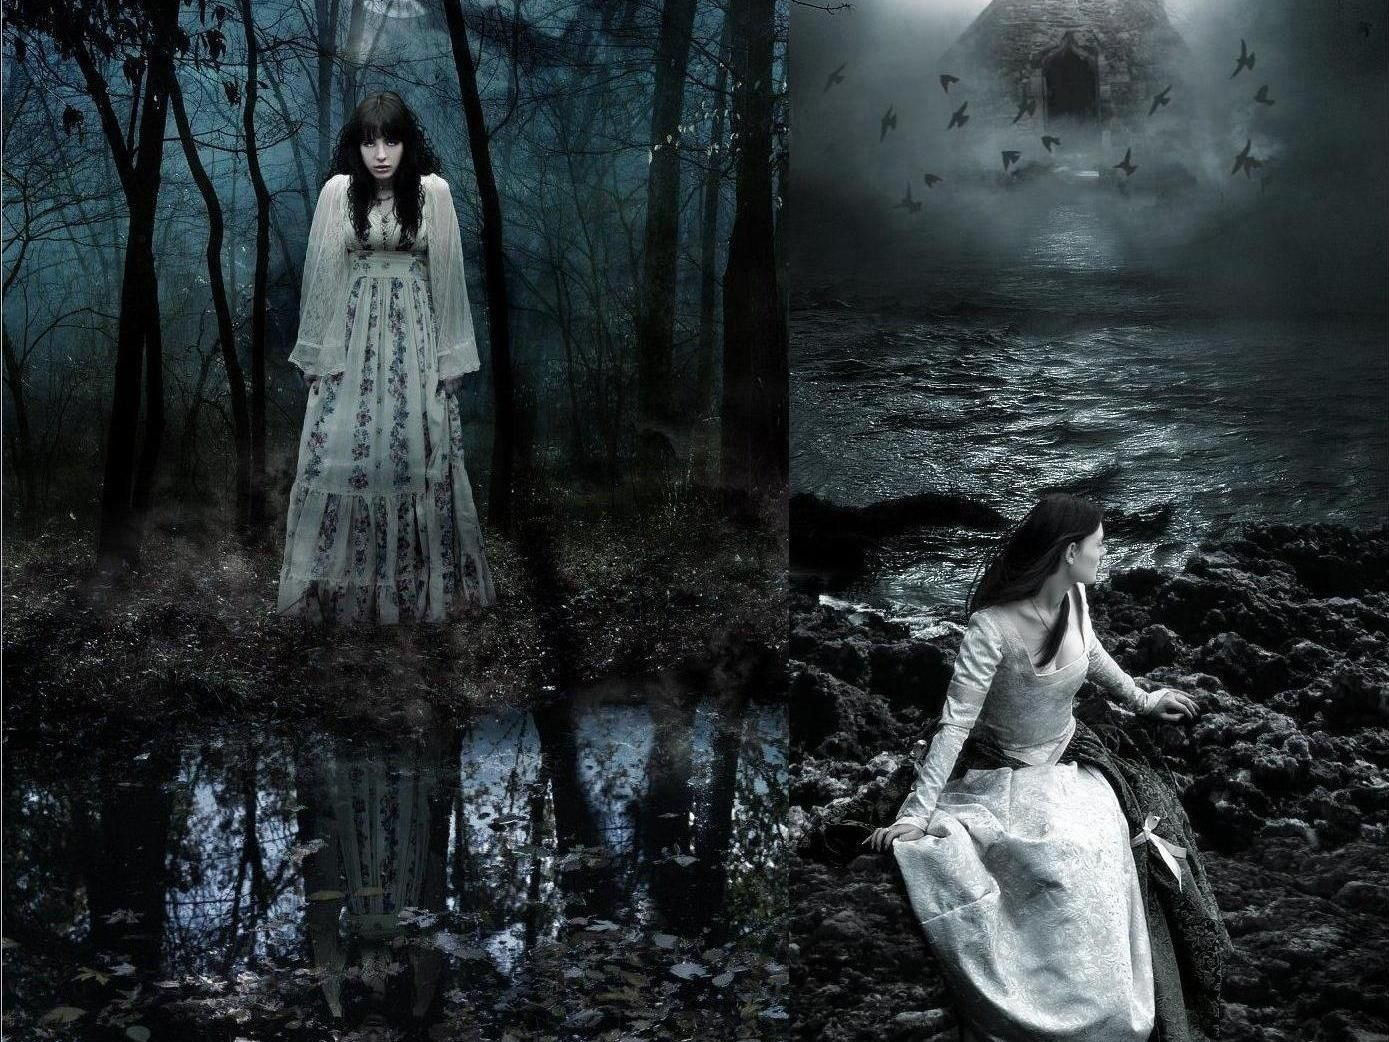 Dark Gothic Backgrounds Images